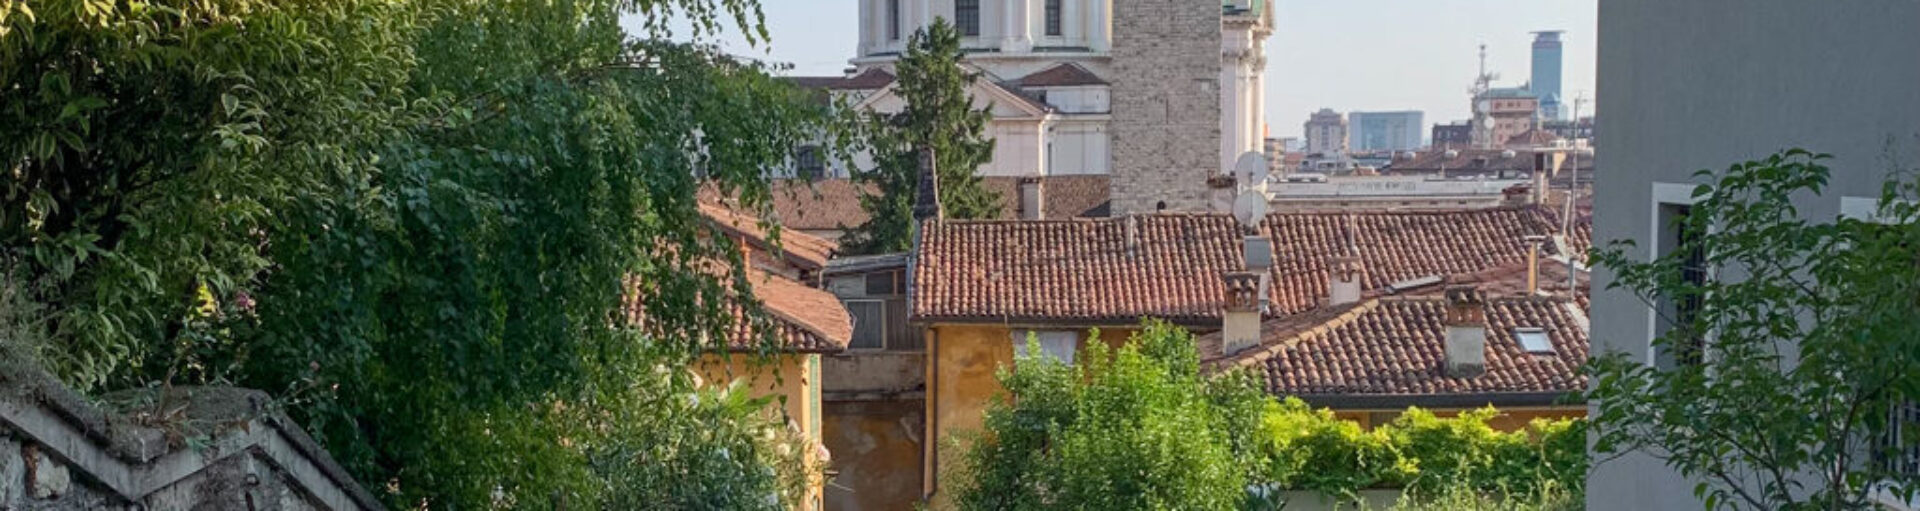 Visit Brescia – what to see in a day in the city of Mille Miglia